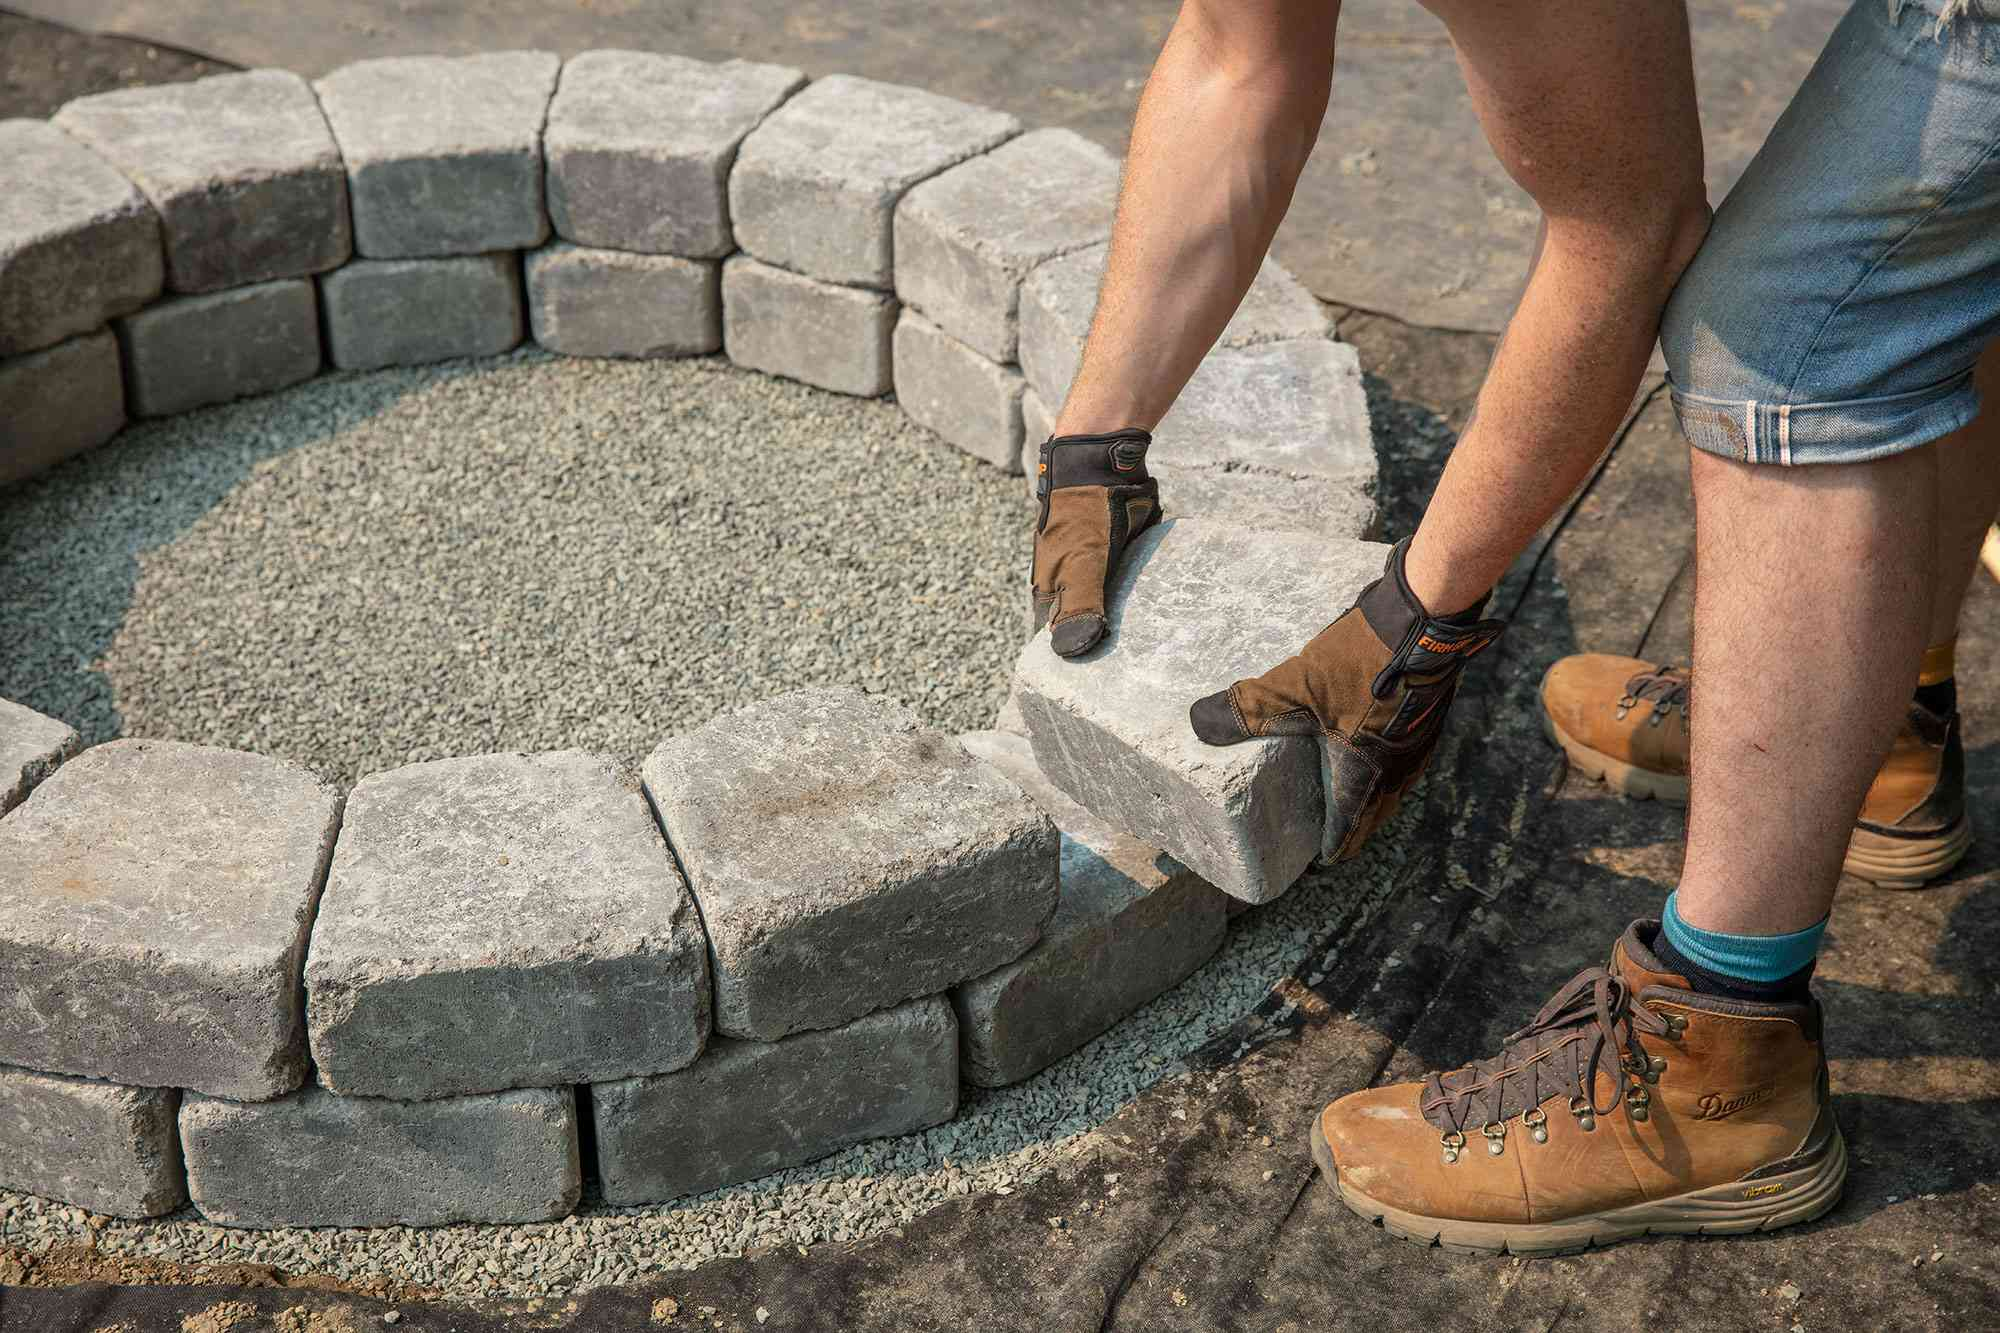 Second set of tier blocks added in staggered manner for fire pit